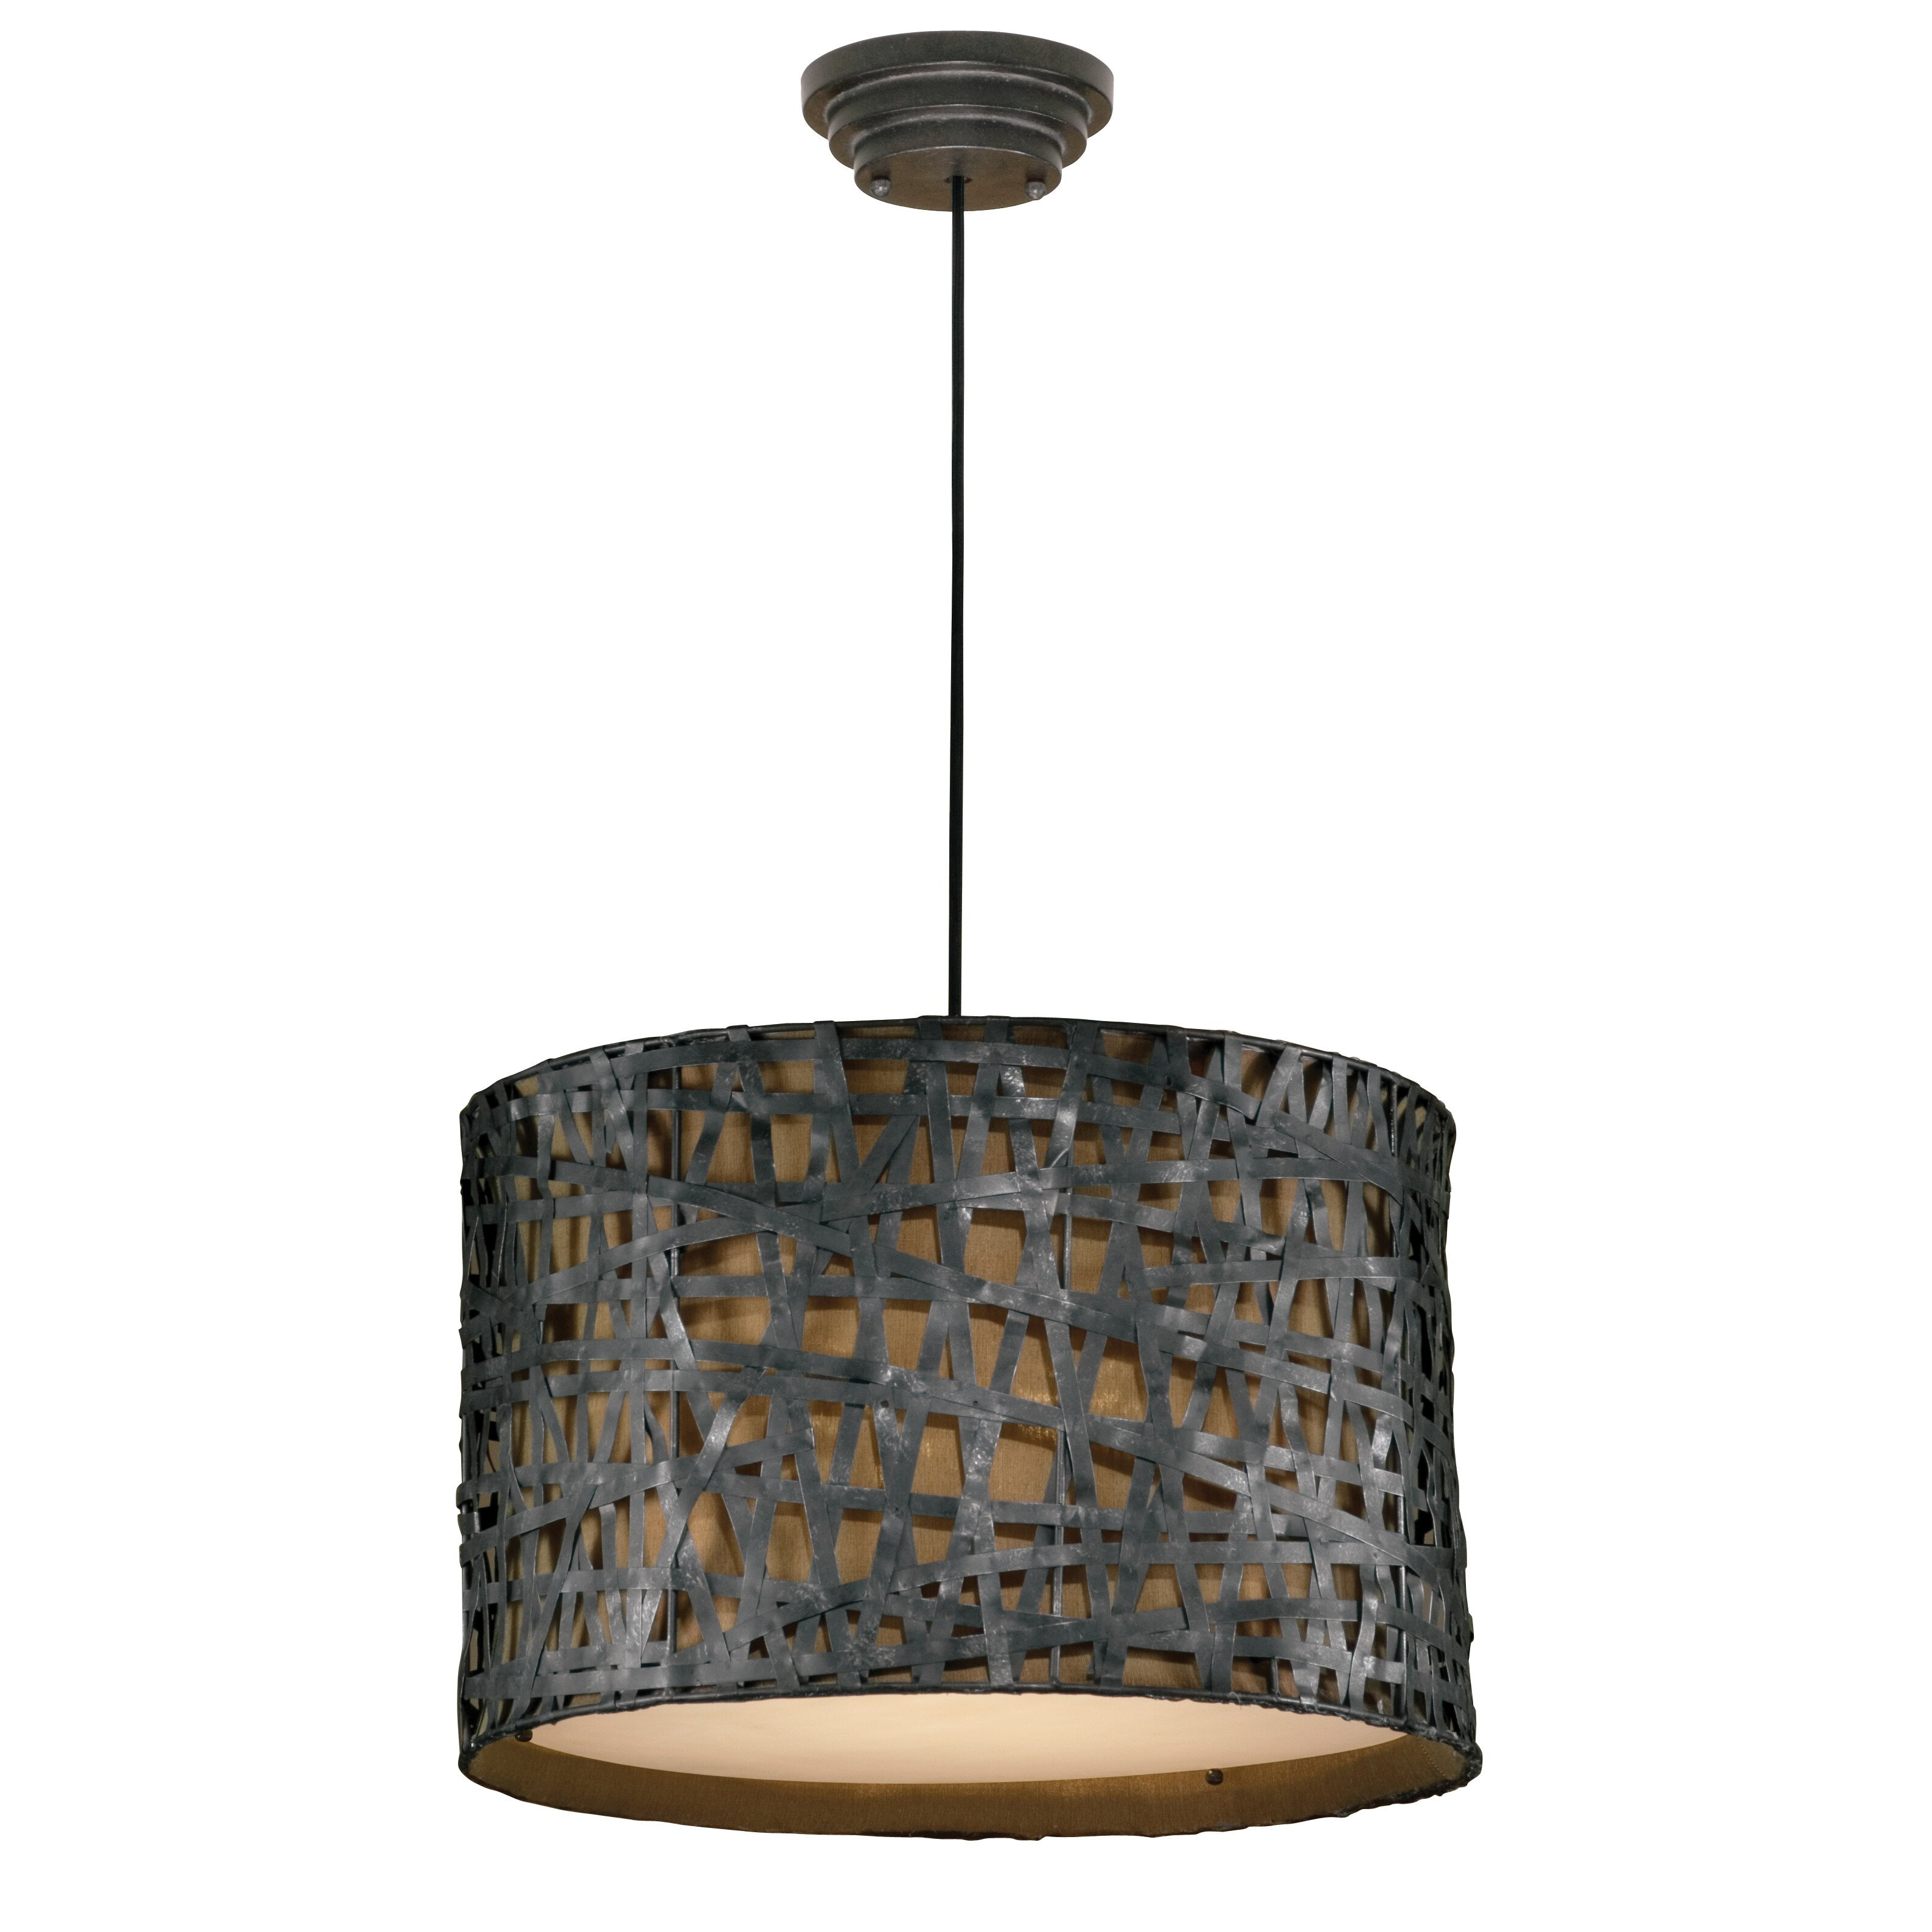 Foyer Drum Lighting : Uttermost alita light drum foyer pendant reviews wayfair